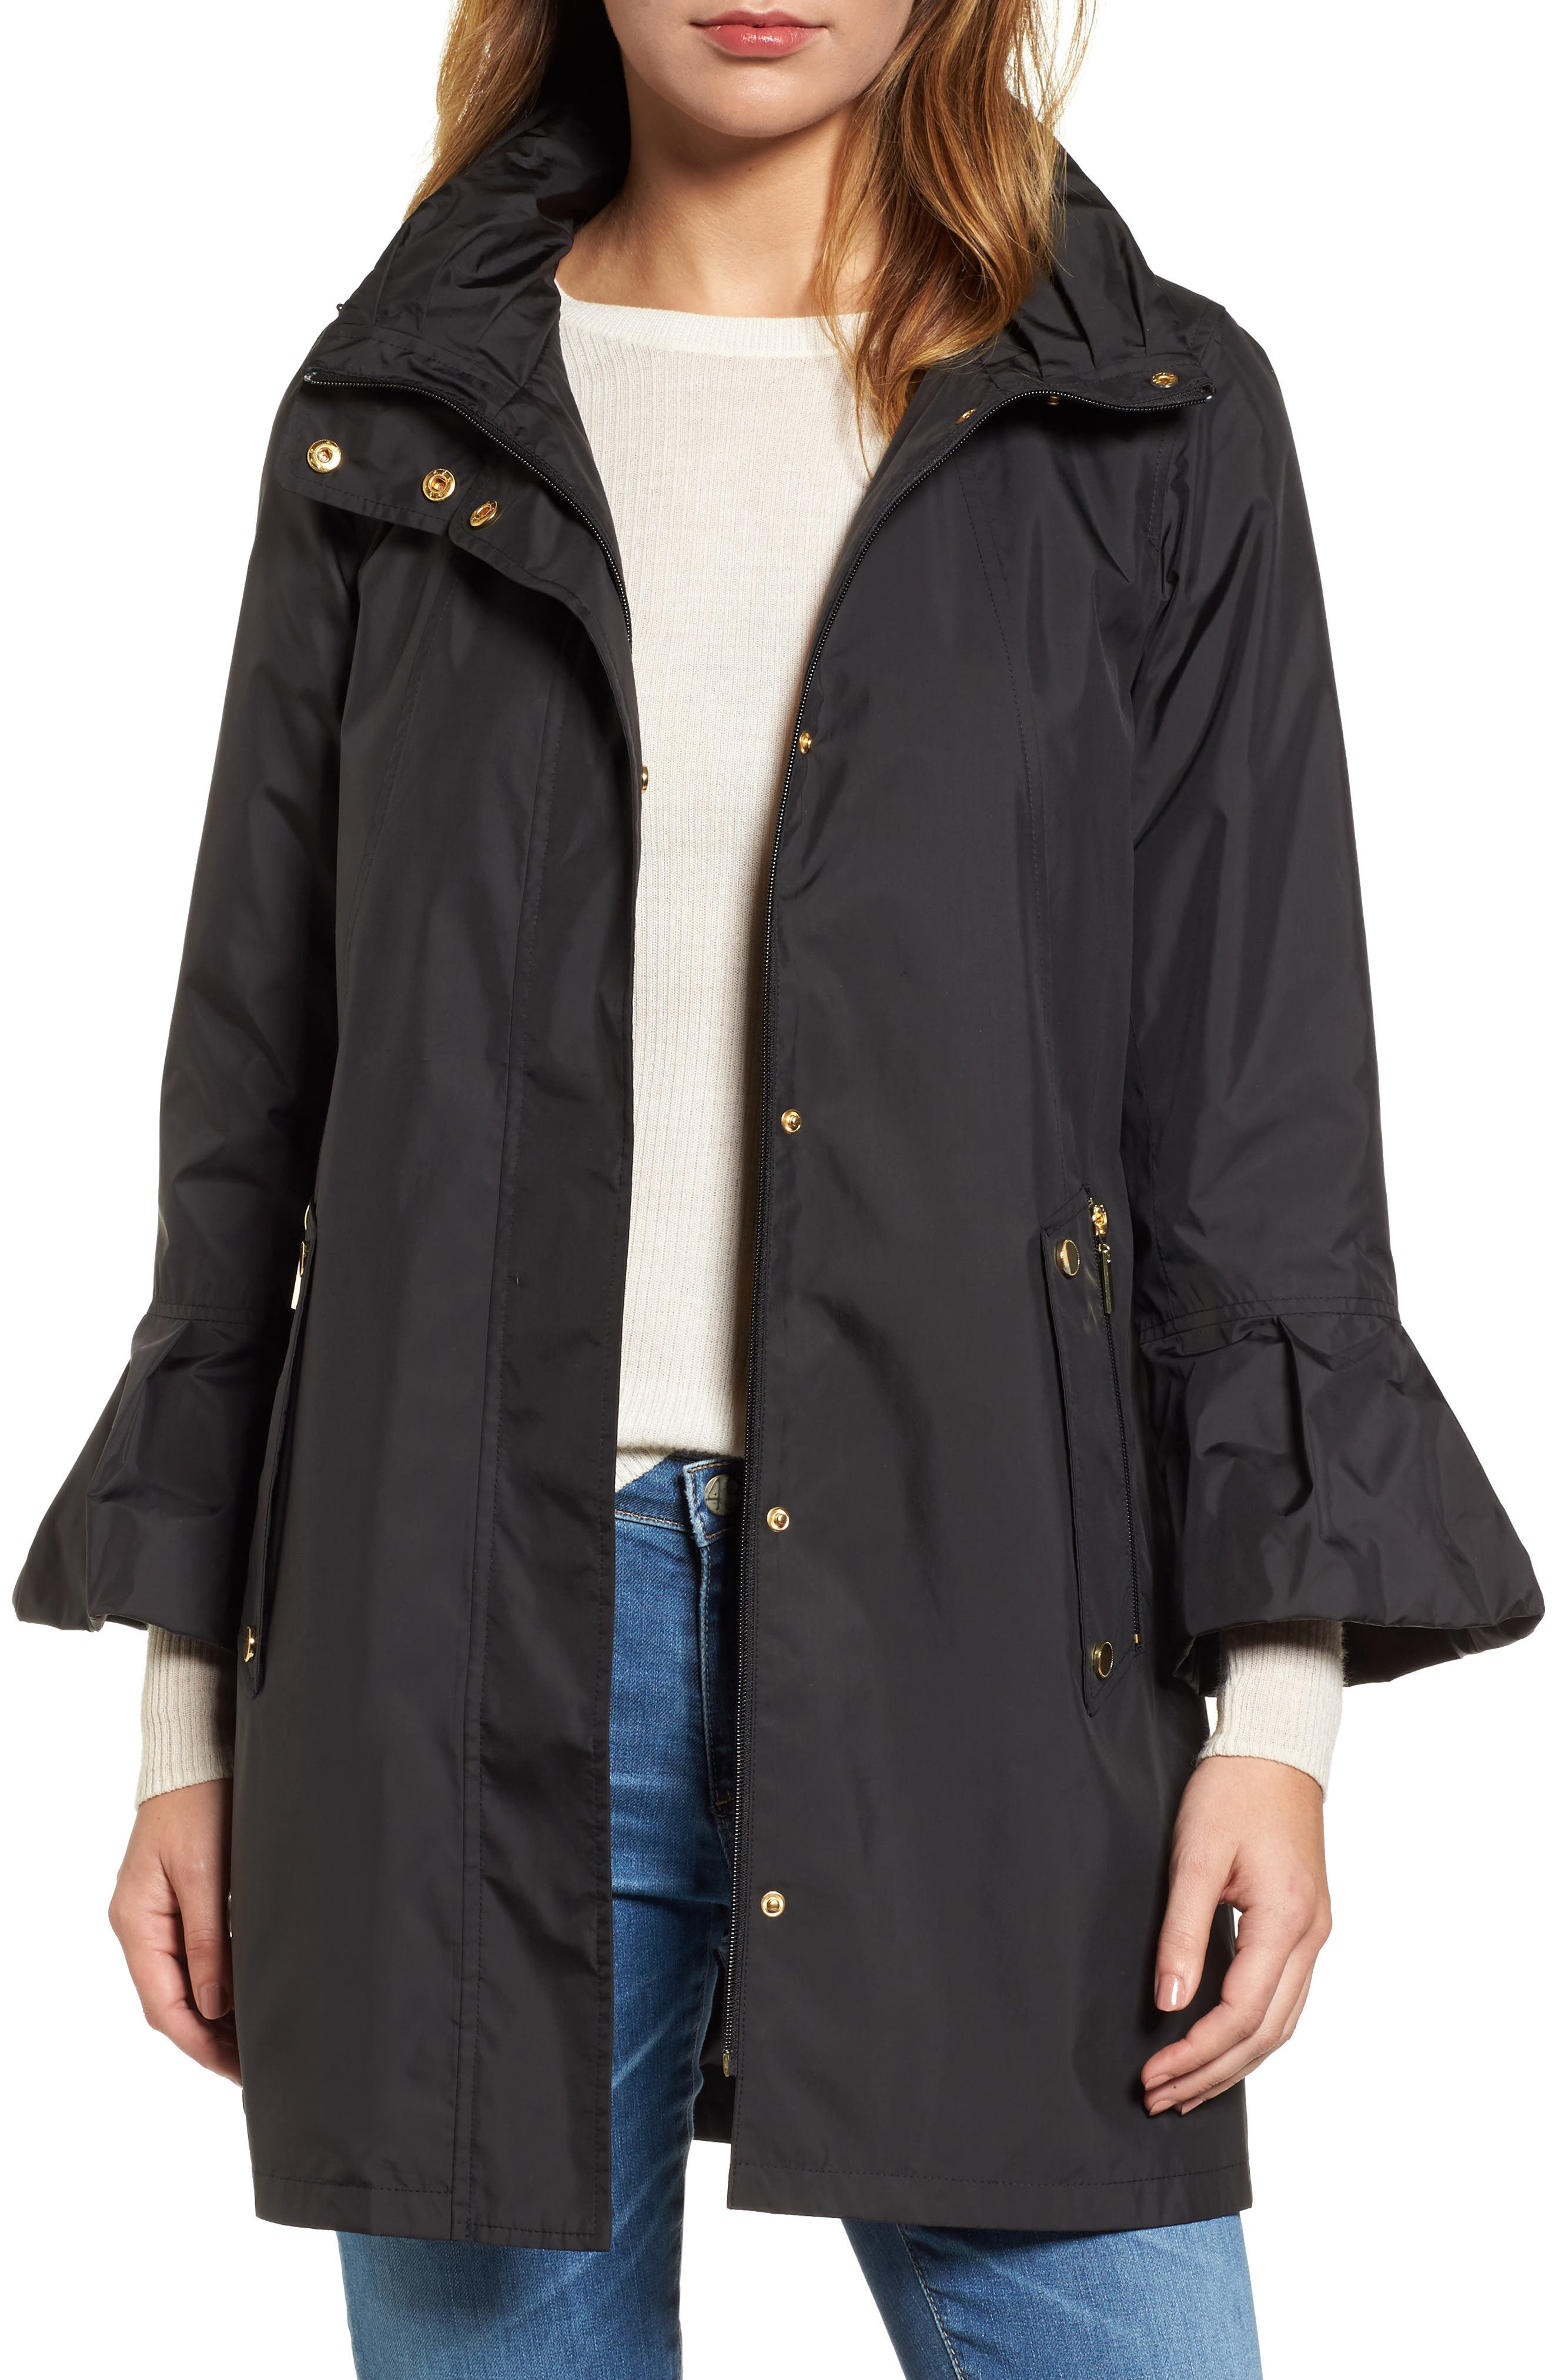 Flare Sleeve Packable Swing Jacket,                         Main,                         color,